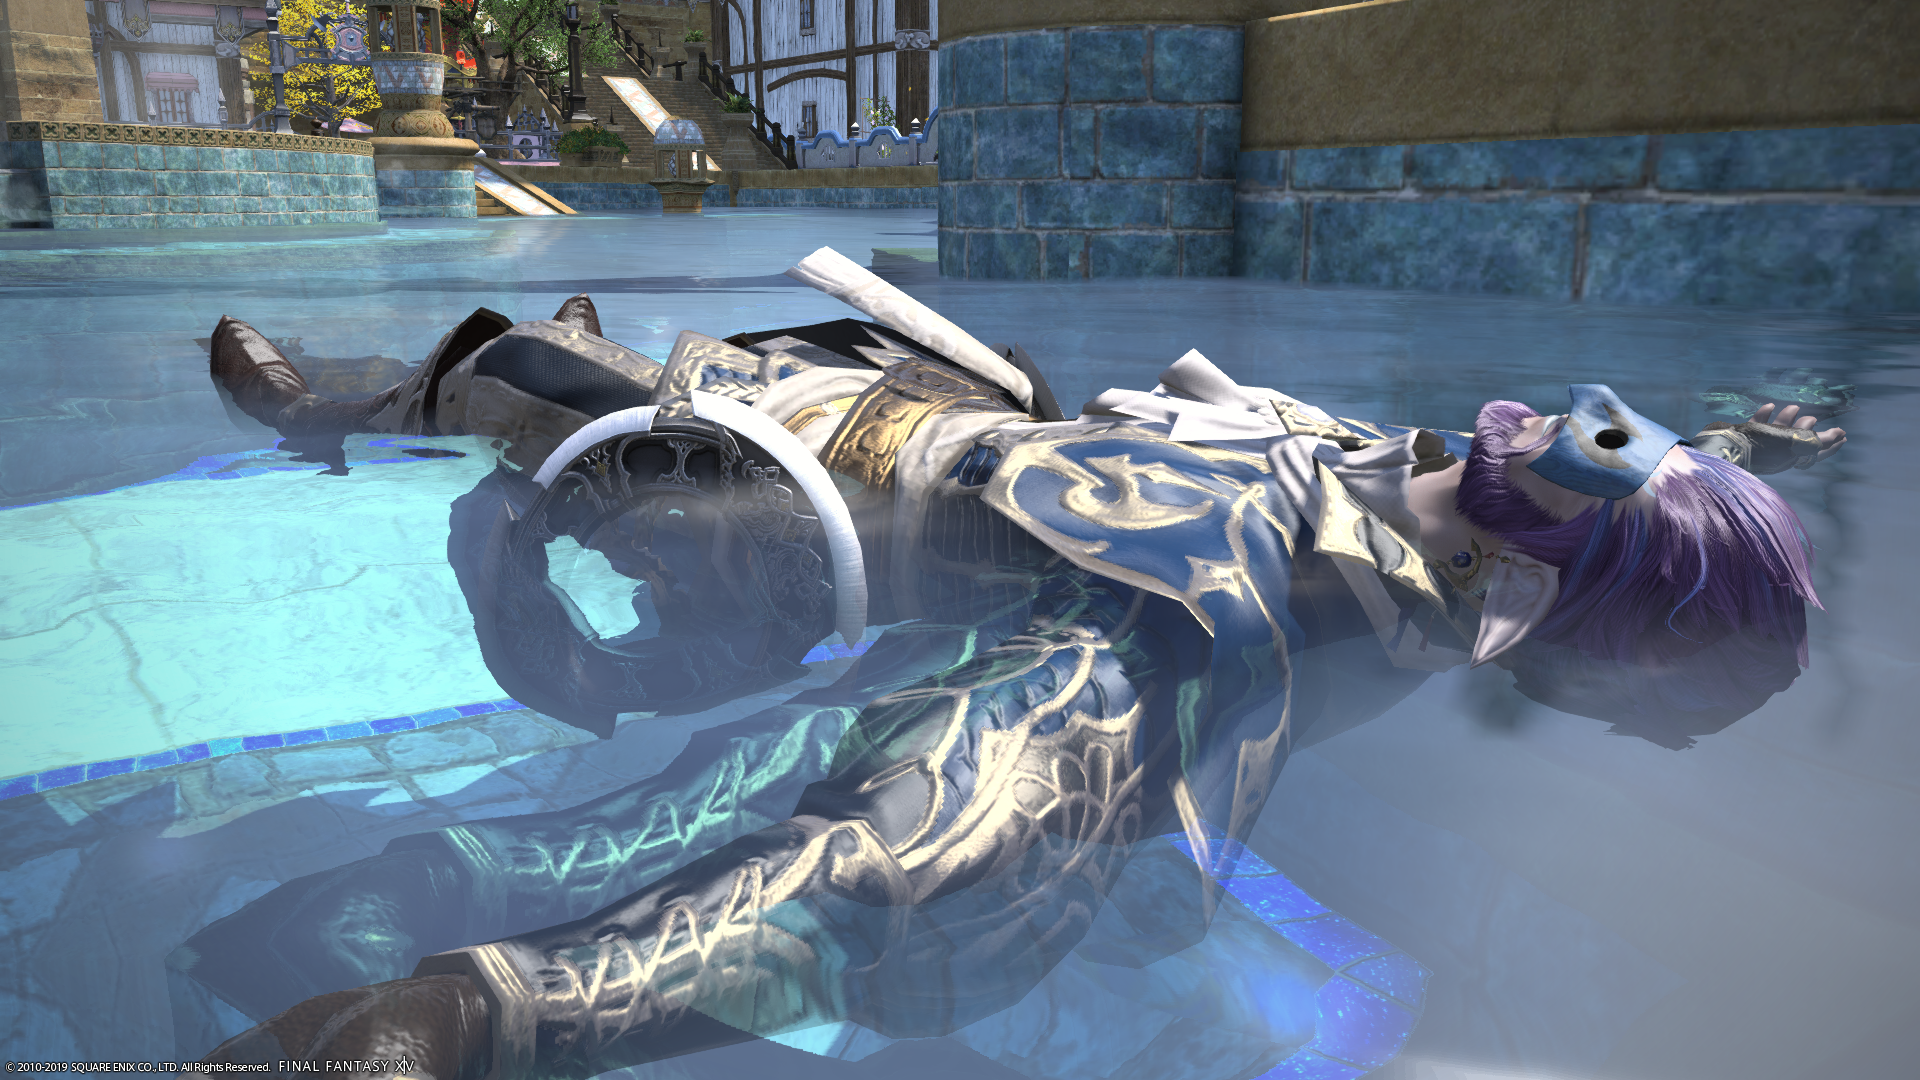 Rohiaux in dancer glamour, floating in the pool in the Goblet